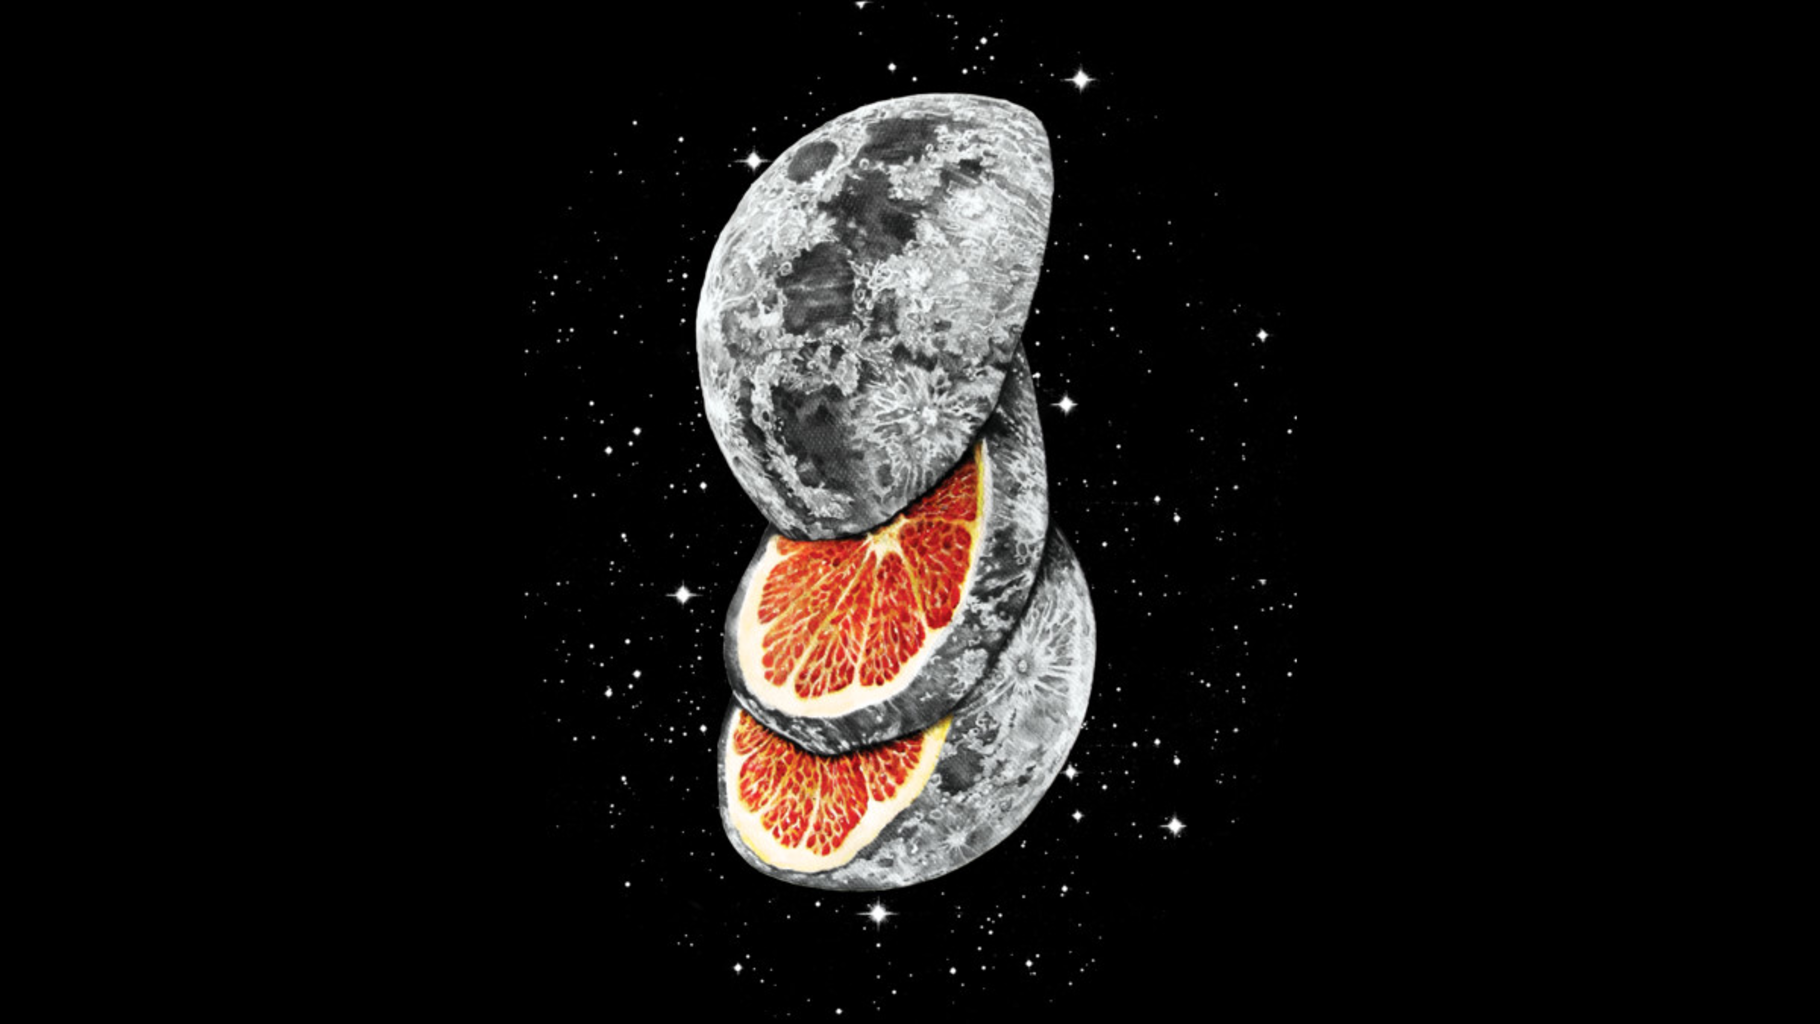 Design by Humans: Lunar Fruit